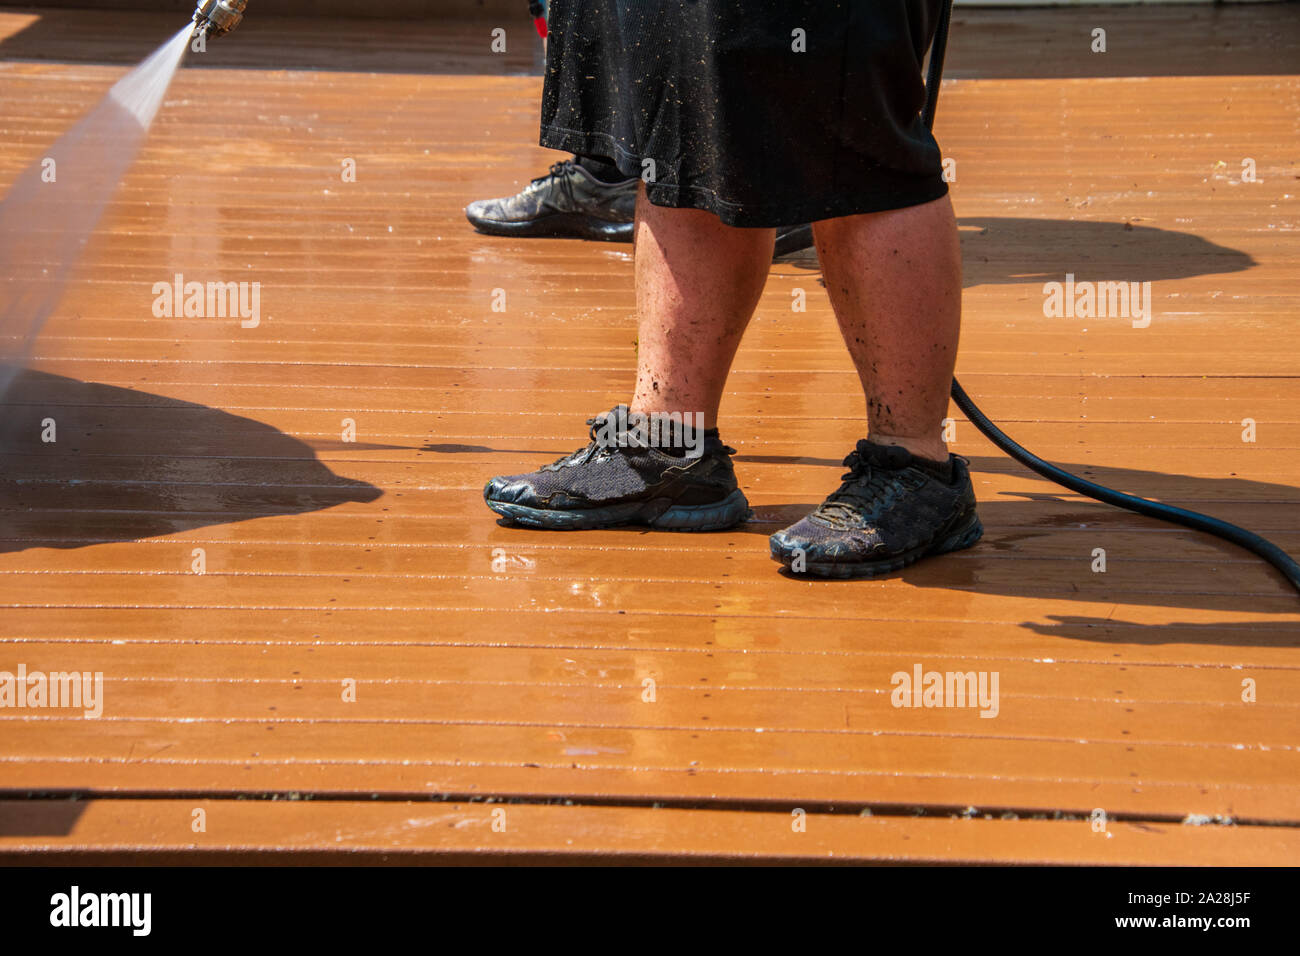 Legs of a man wearing black shorts washing the dirt off of a brown wooden deck with a wide spray of water from a metal nozzle. The man is wearing blac Stock Photo